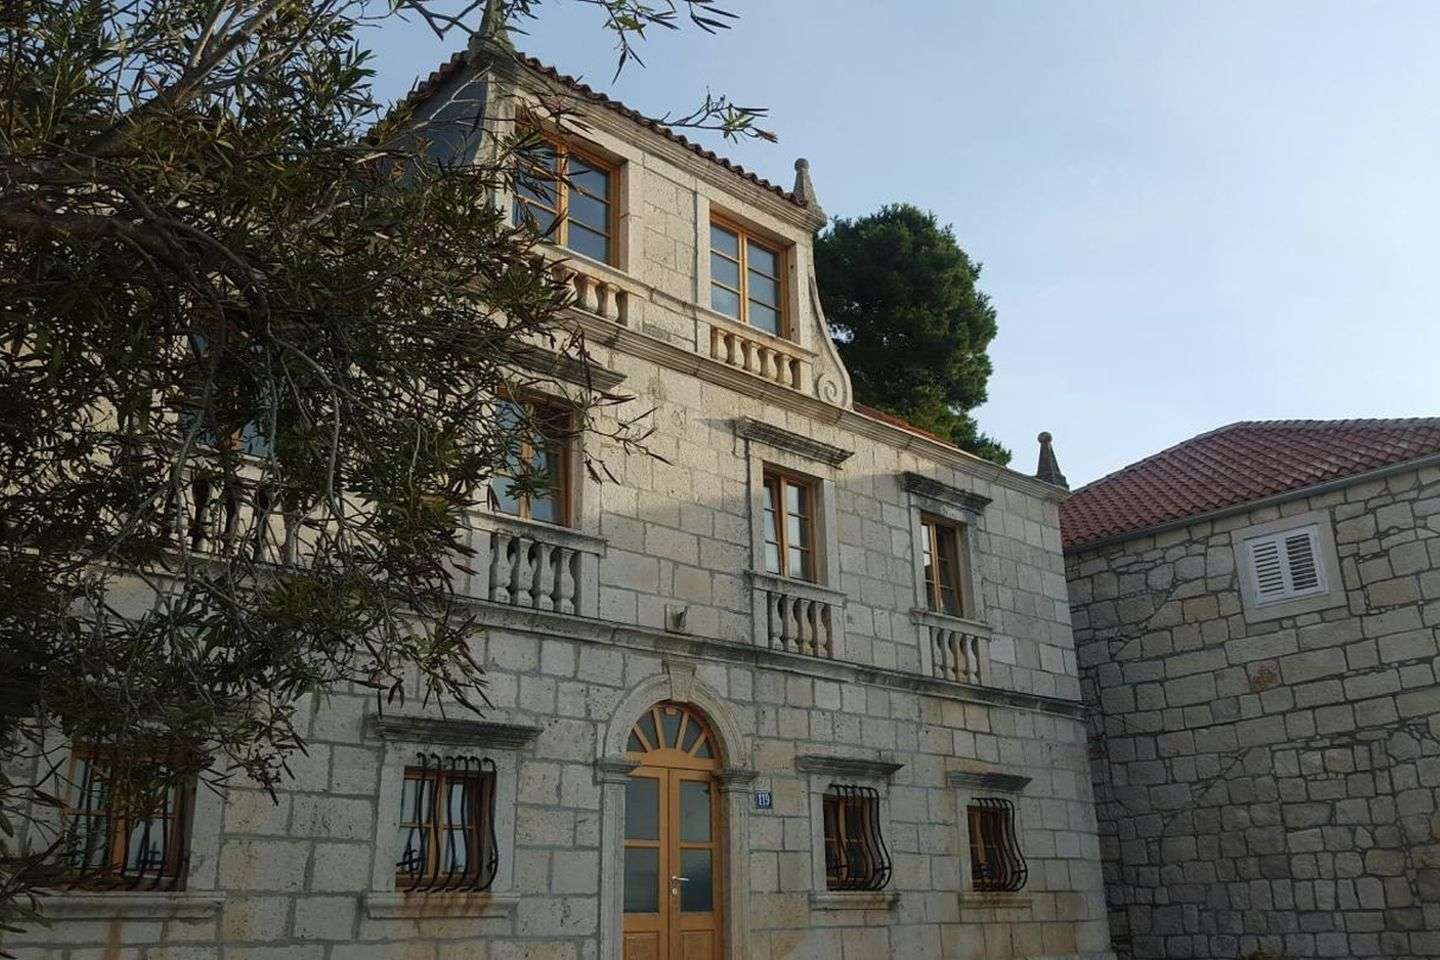 18th century stone seaside palace, surrounded by pine forest